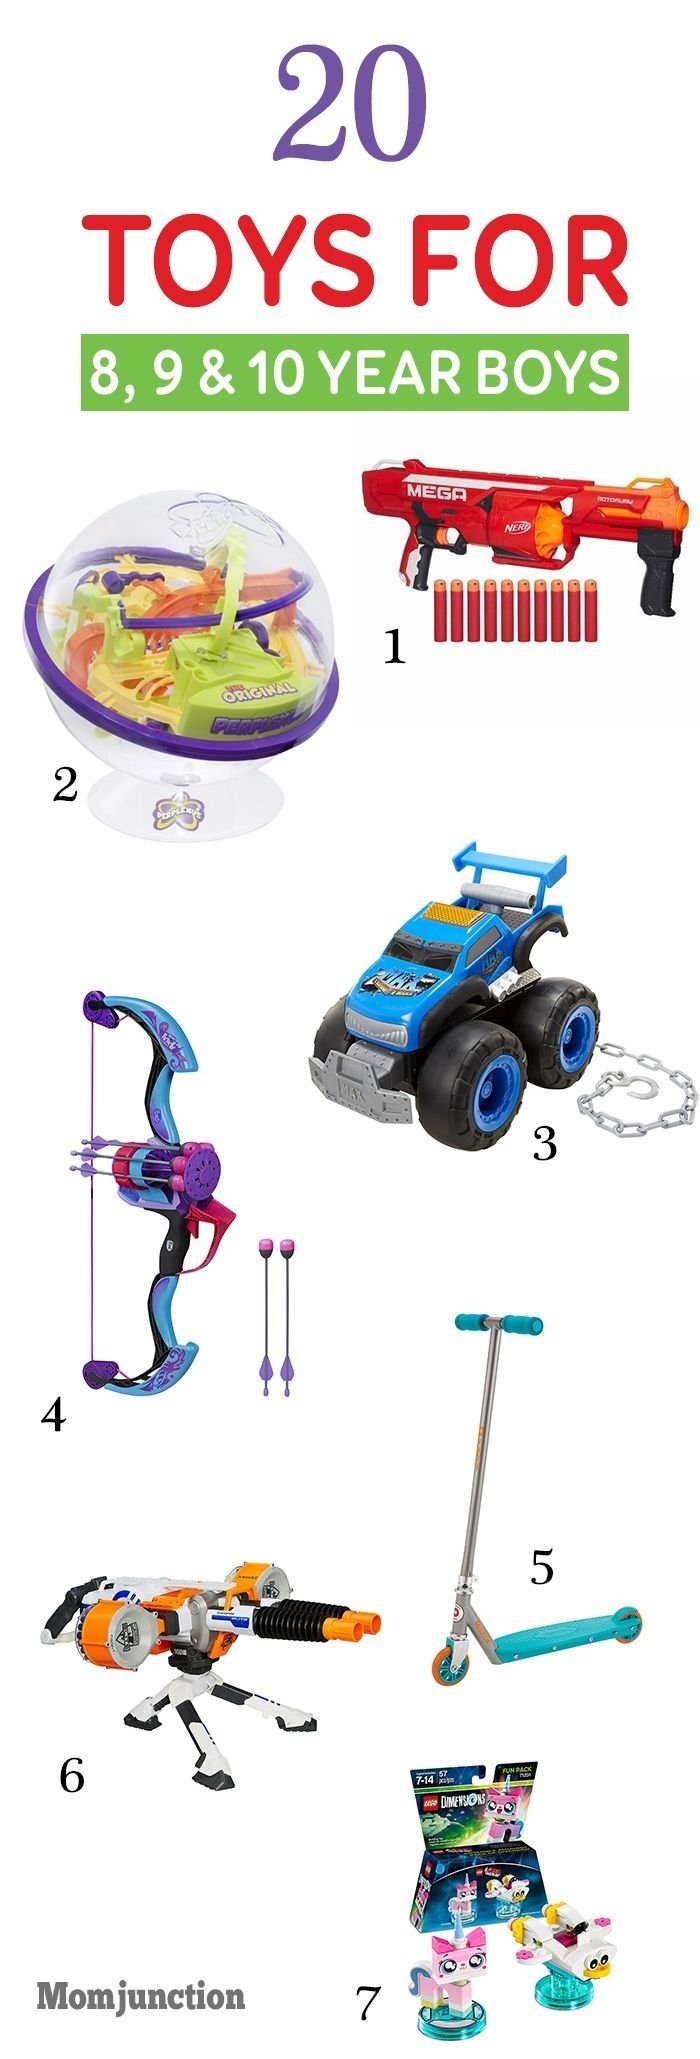 10 Most Recommended Gift Idea For 8 Year Old Boy 19 perfect toys for 8 9 and 10 year old boys 10 years toy and gift 2 2021